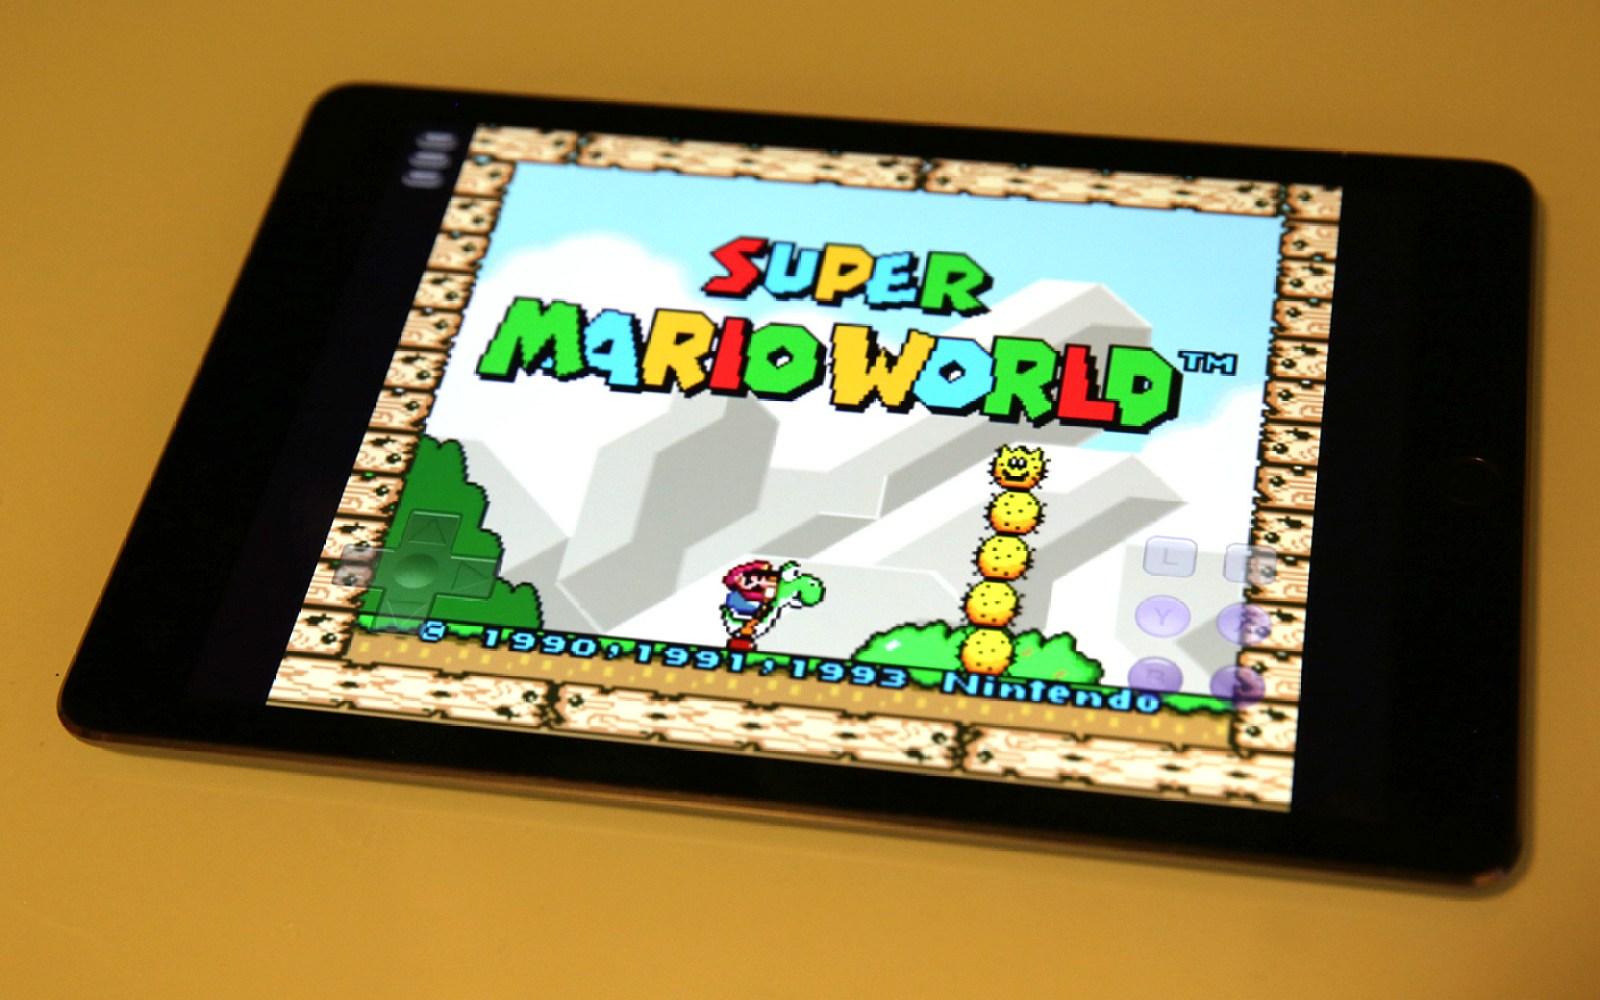 Opinion: Don't hold your breath for real Nintendo games on your iPhone or iPad